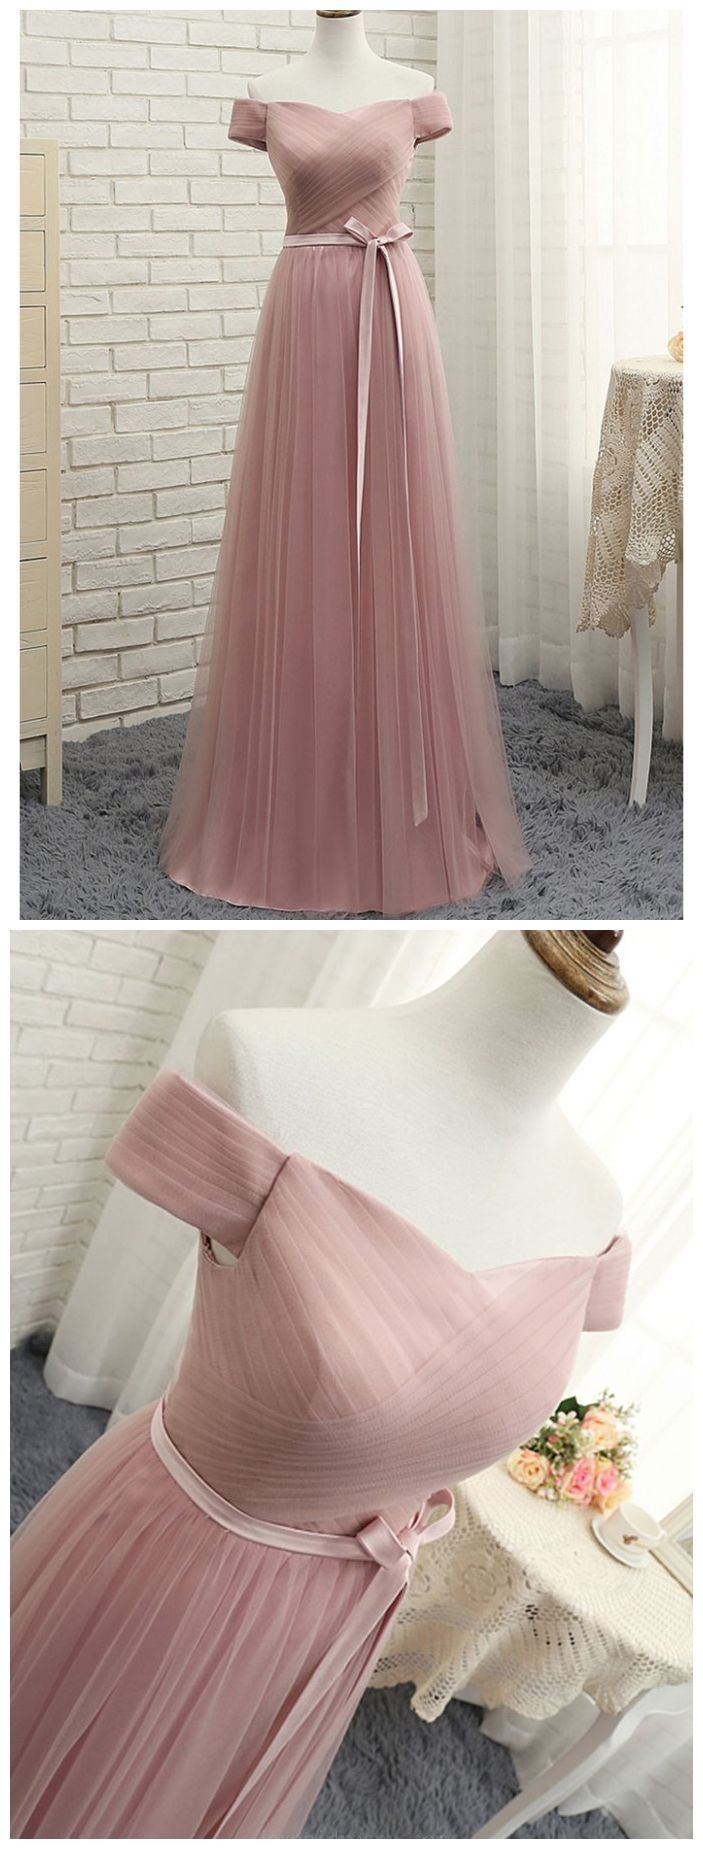 Colorful Ball Gown Prom Dresses Prom Dresses 2019 Long Prom Dresses Prom Dresses…